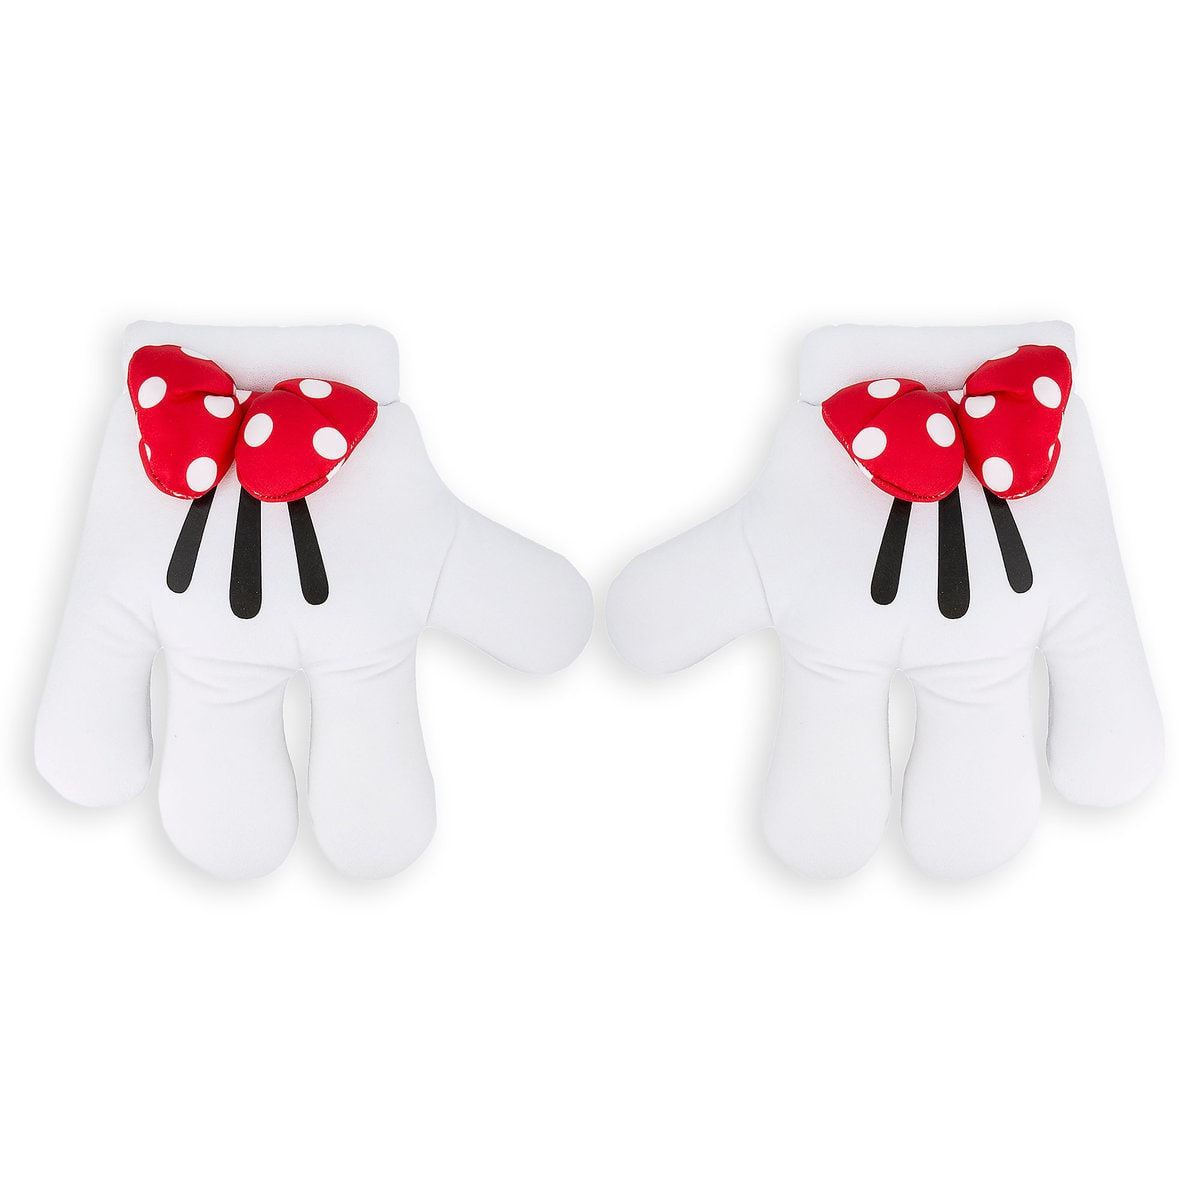 Minnie Moues plush gloves to wear for Disney dress up | Top 25 Disney Gift Ideas for Toddlers featured by top US Disney blogger, Marcie and the Mouse